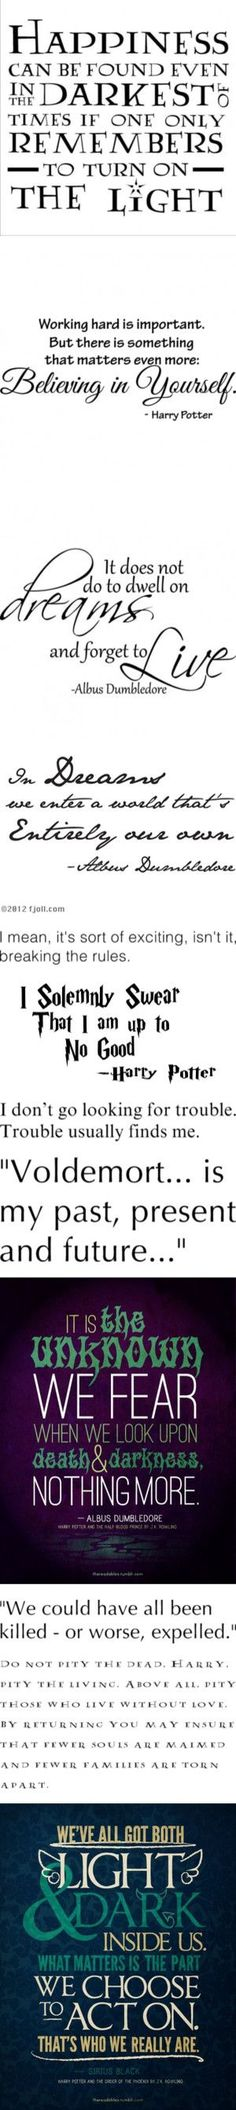 Harry Potter Quotes by starbucksforari on Polyvore featuring quotes, words, text, harry potter, backgrounds, fillers, phrase, saying, phrases and hp